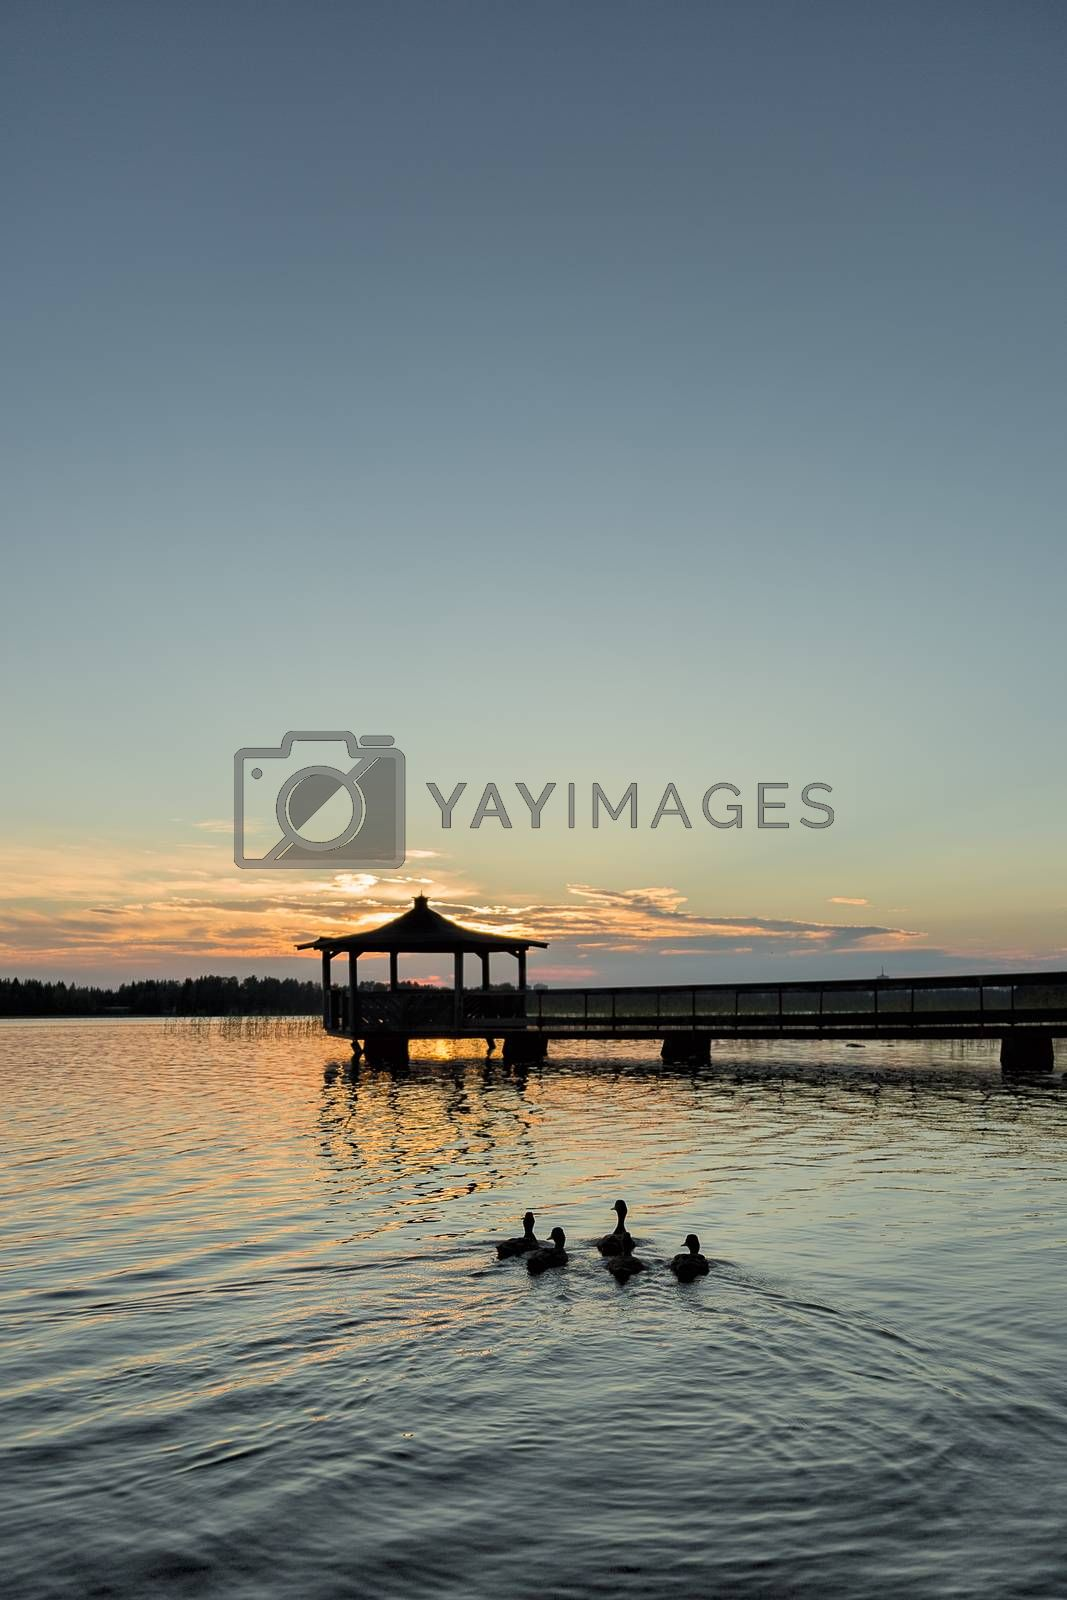 Gazebo in Lake with Mallard Ducks in Water at Sunset.